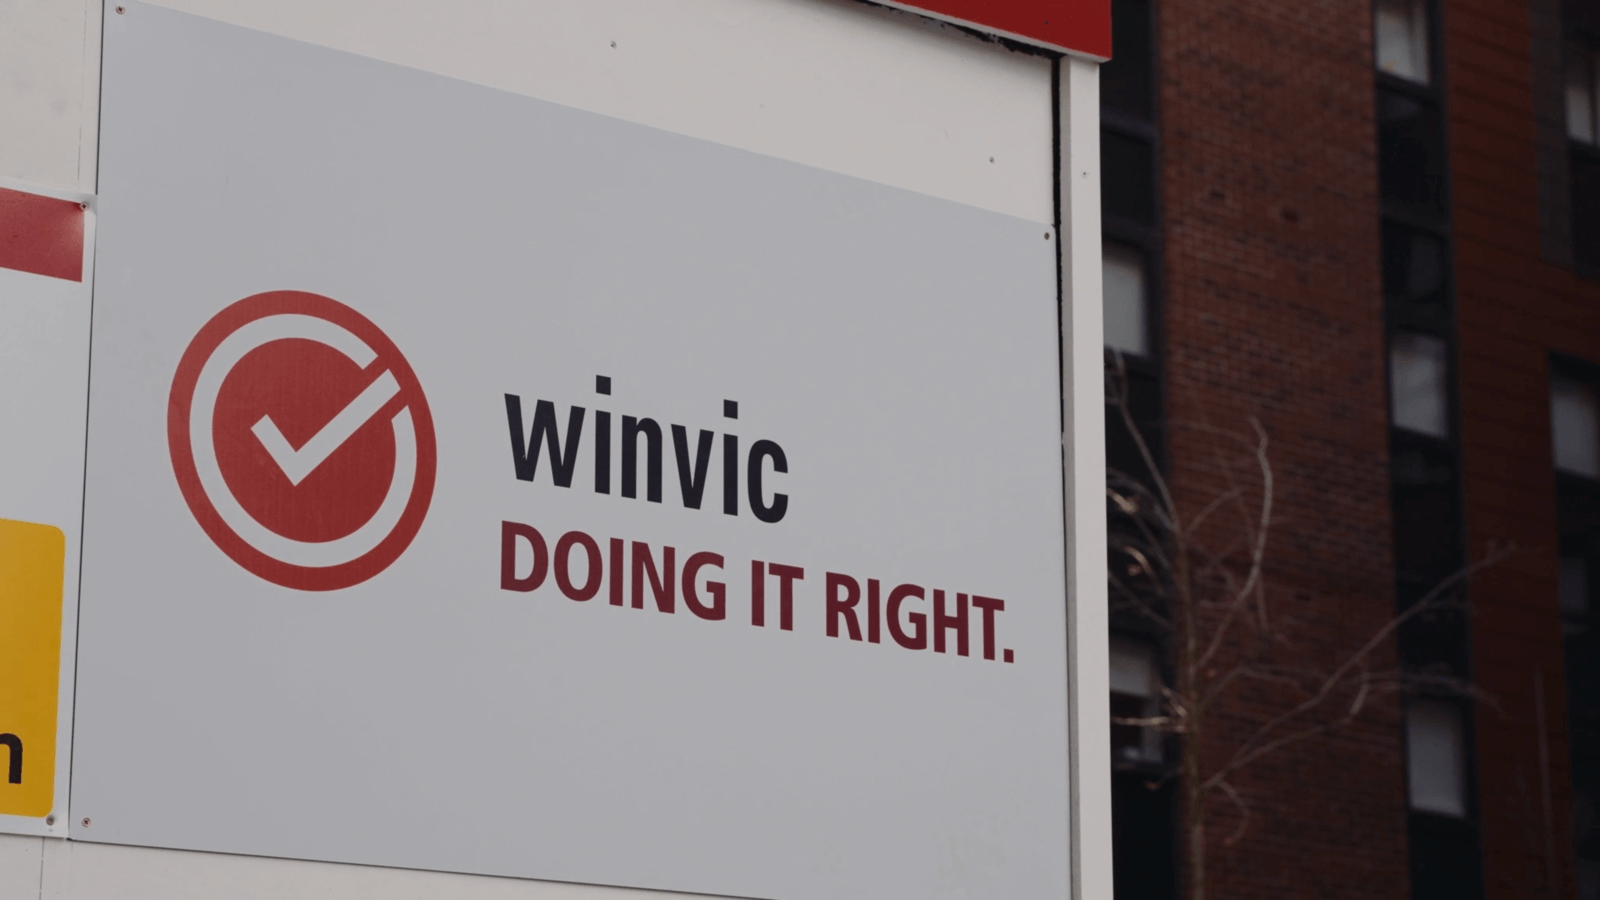 Winvic Doing It Right Health and Safety Logo on site